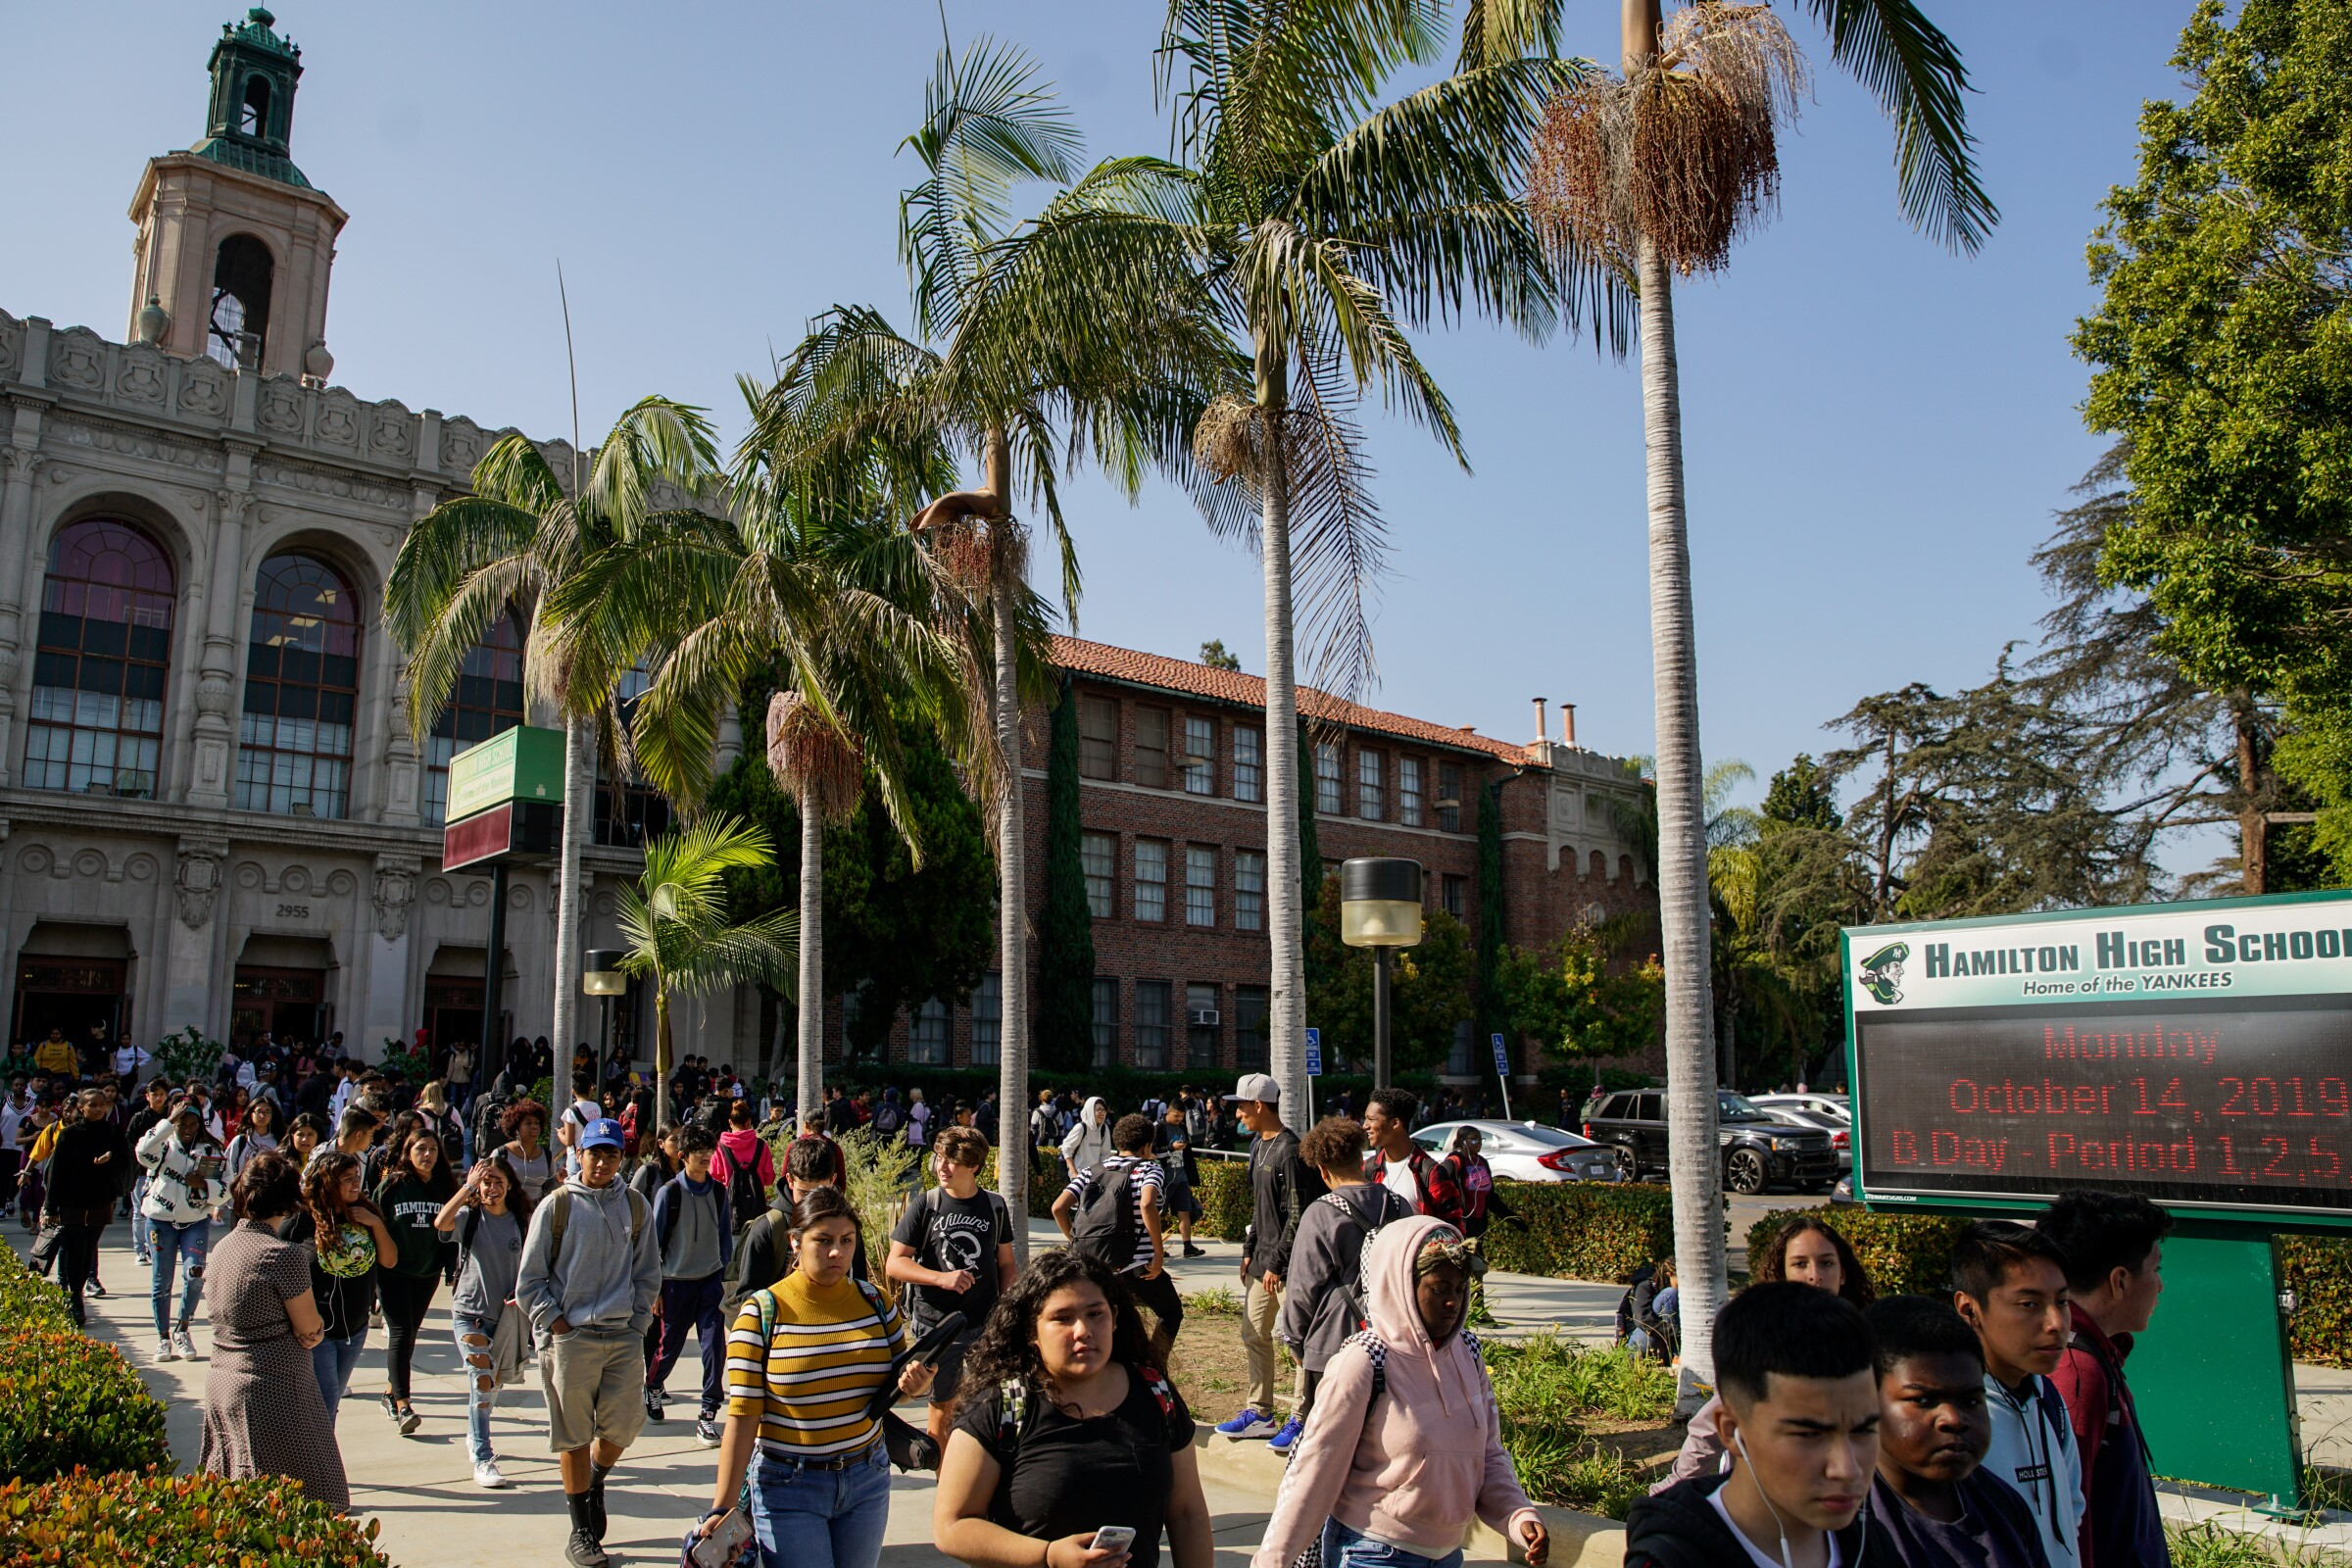 Students file out from Hamilton High School, an L.A. Unified campus with multiple magnet programs.